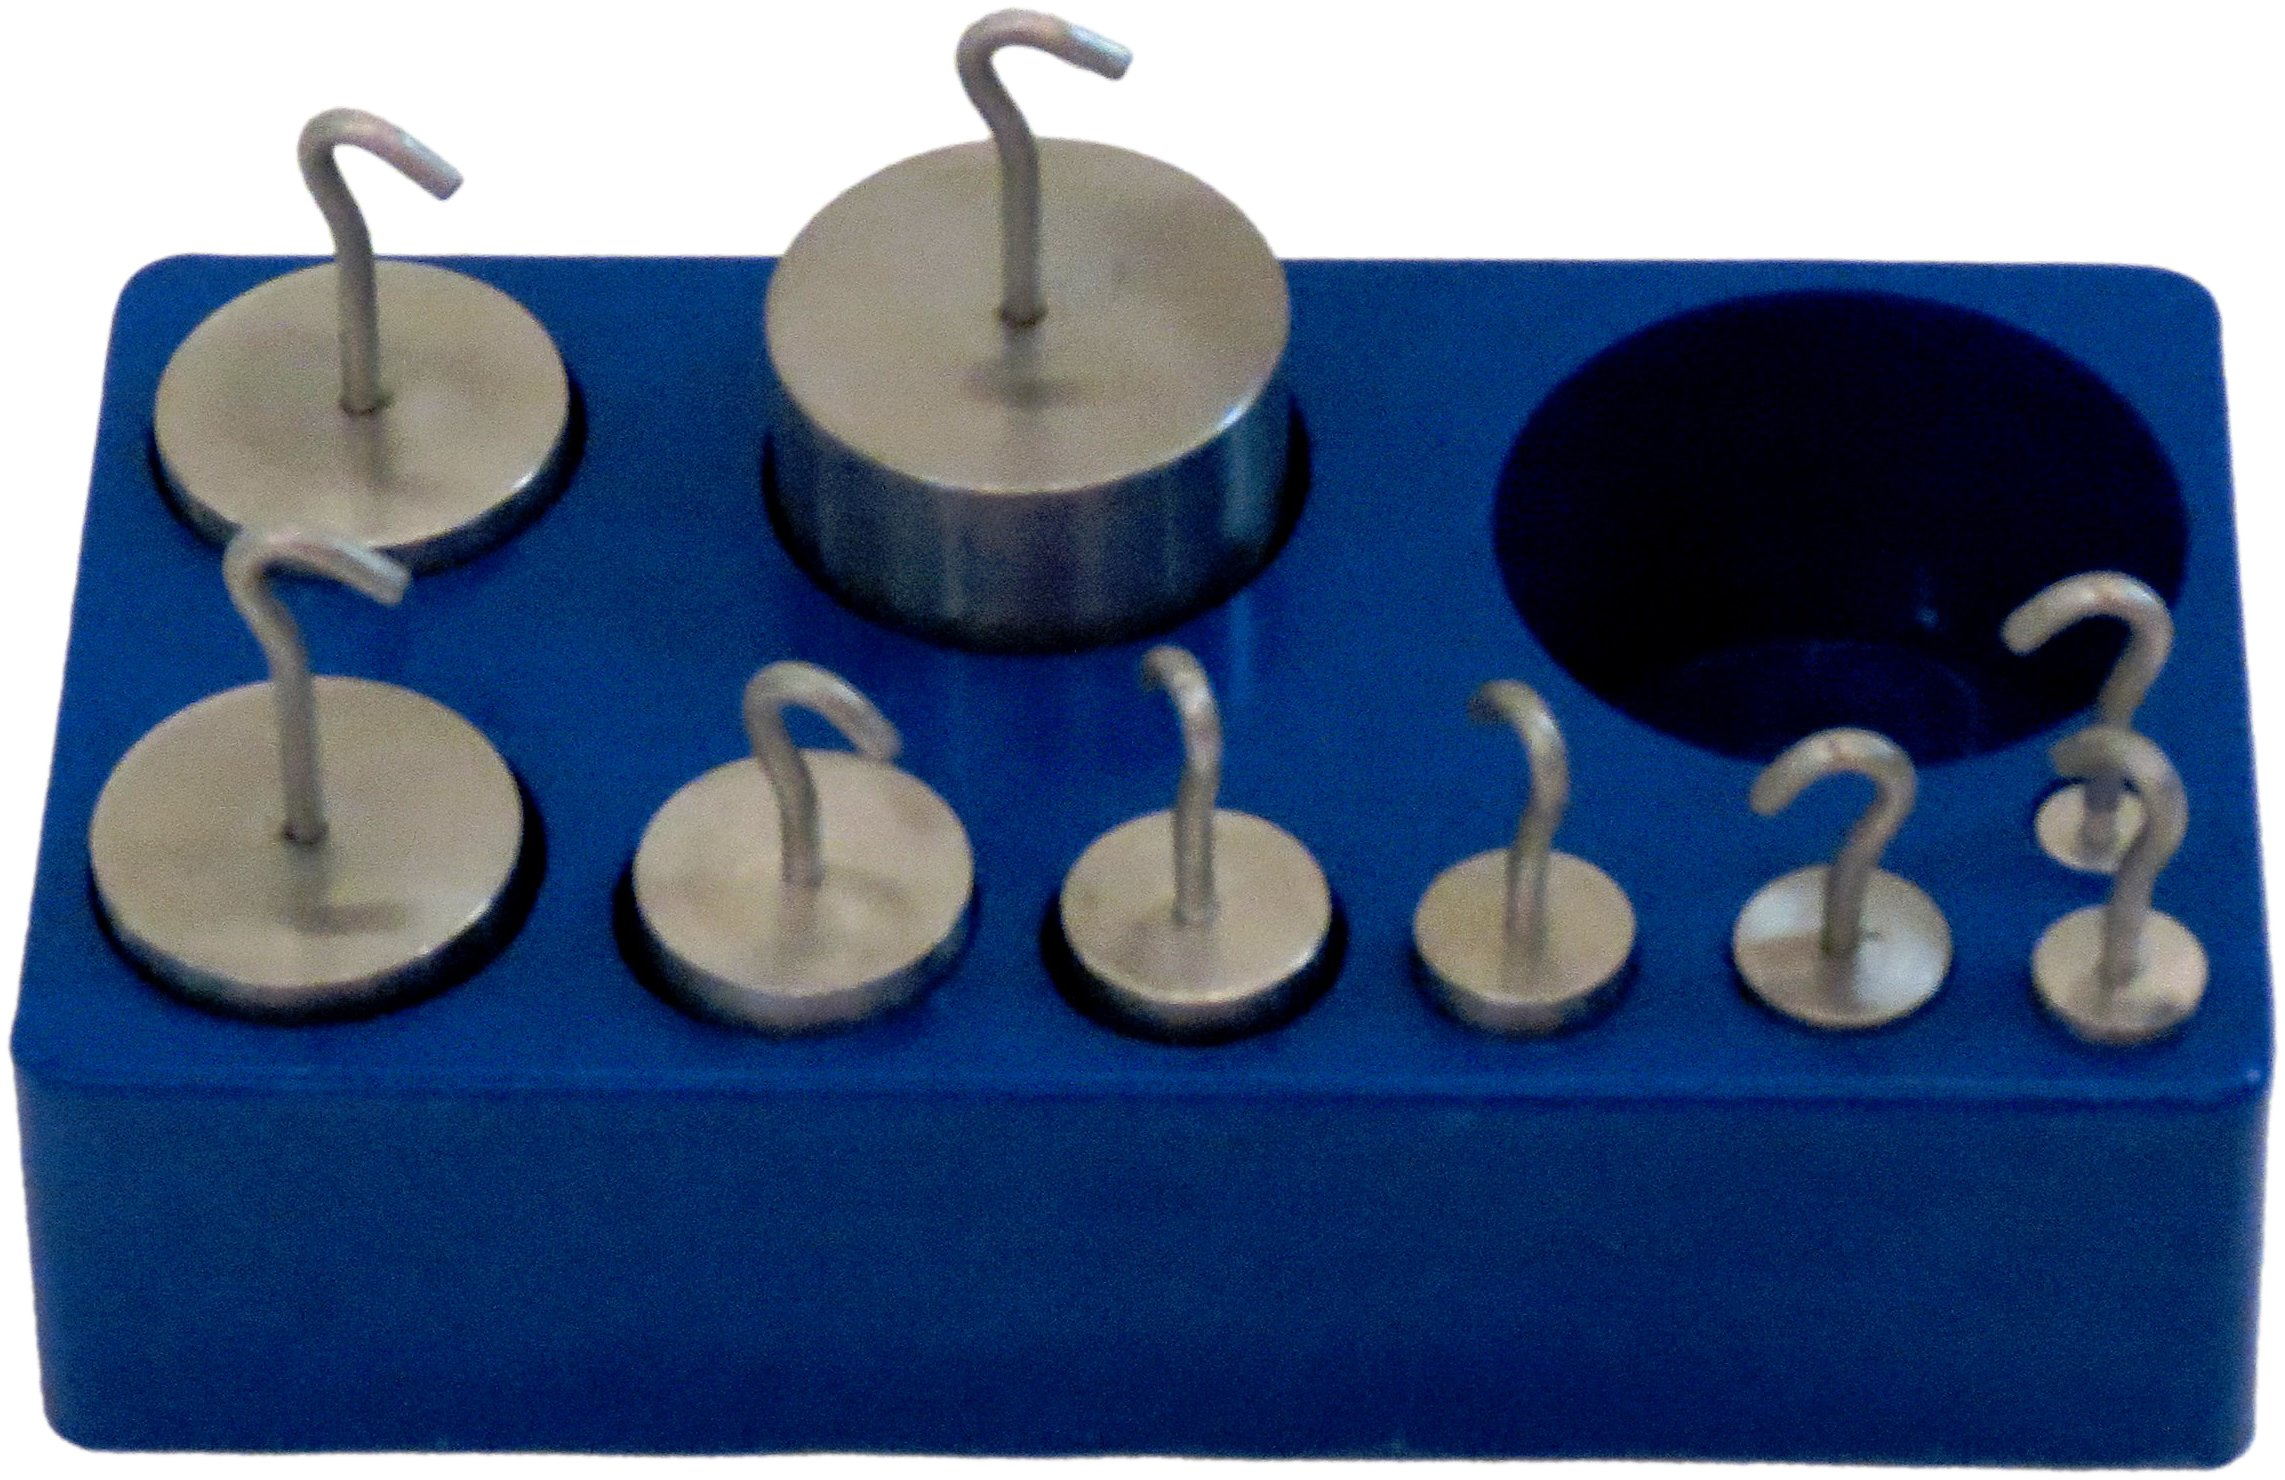 United Scientific Stainless Steel Hooked Weight Set